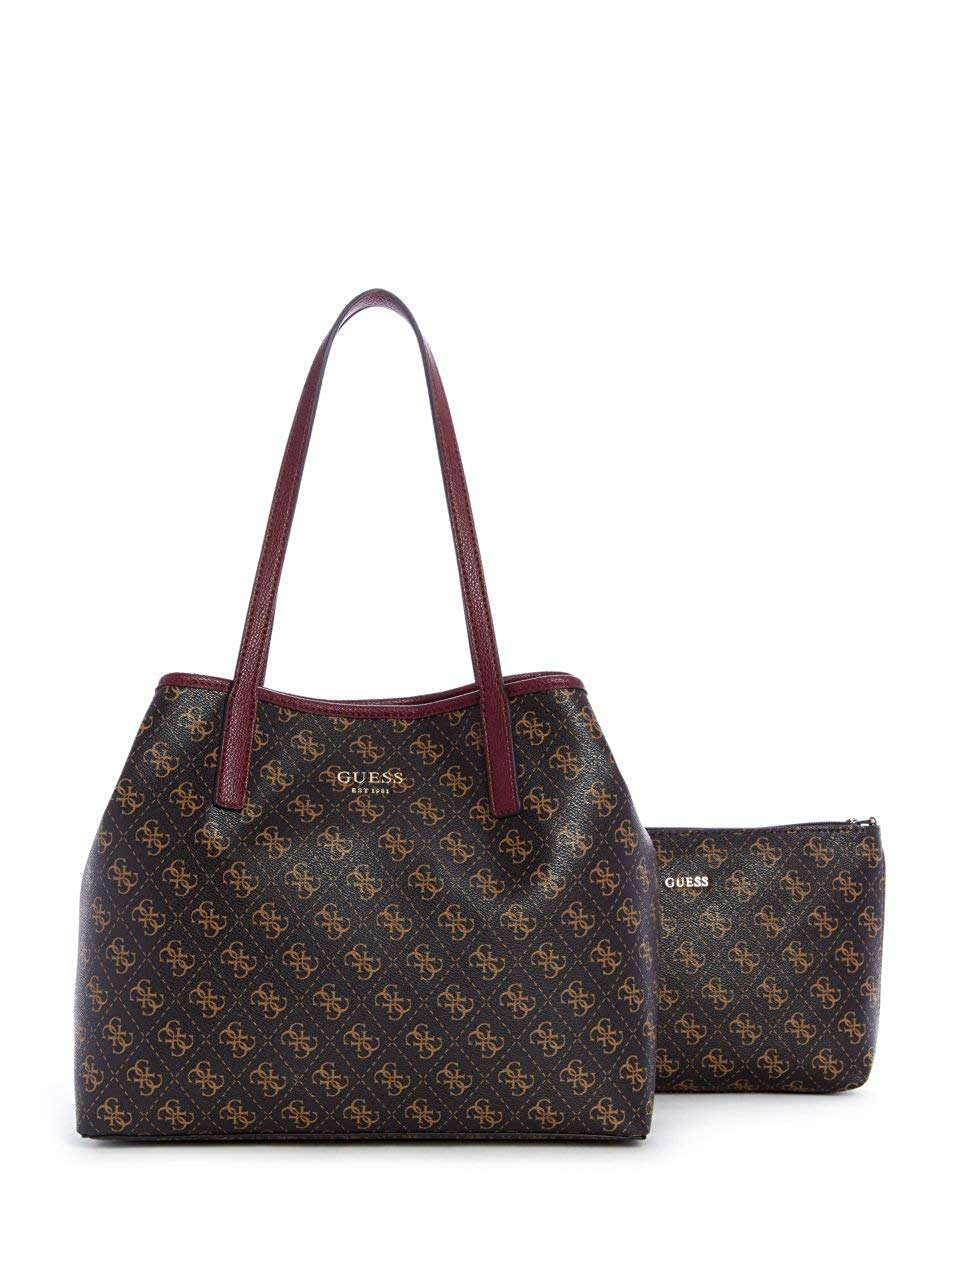 4640606ab2 Get Quotations · GUESS Vikky Classic Tote